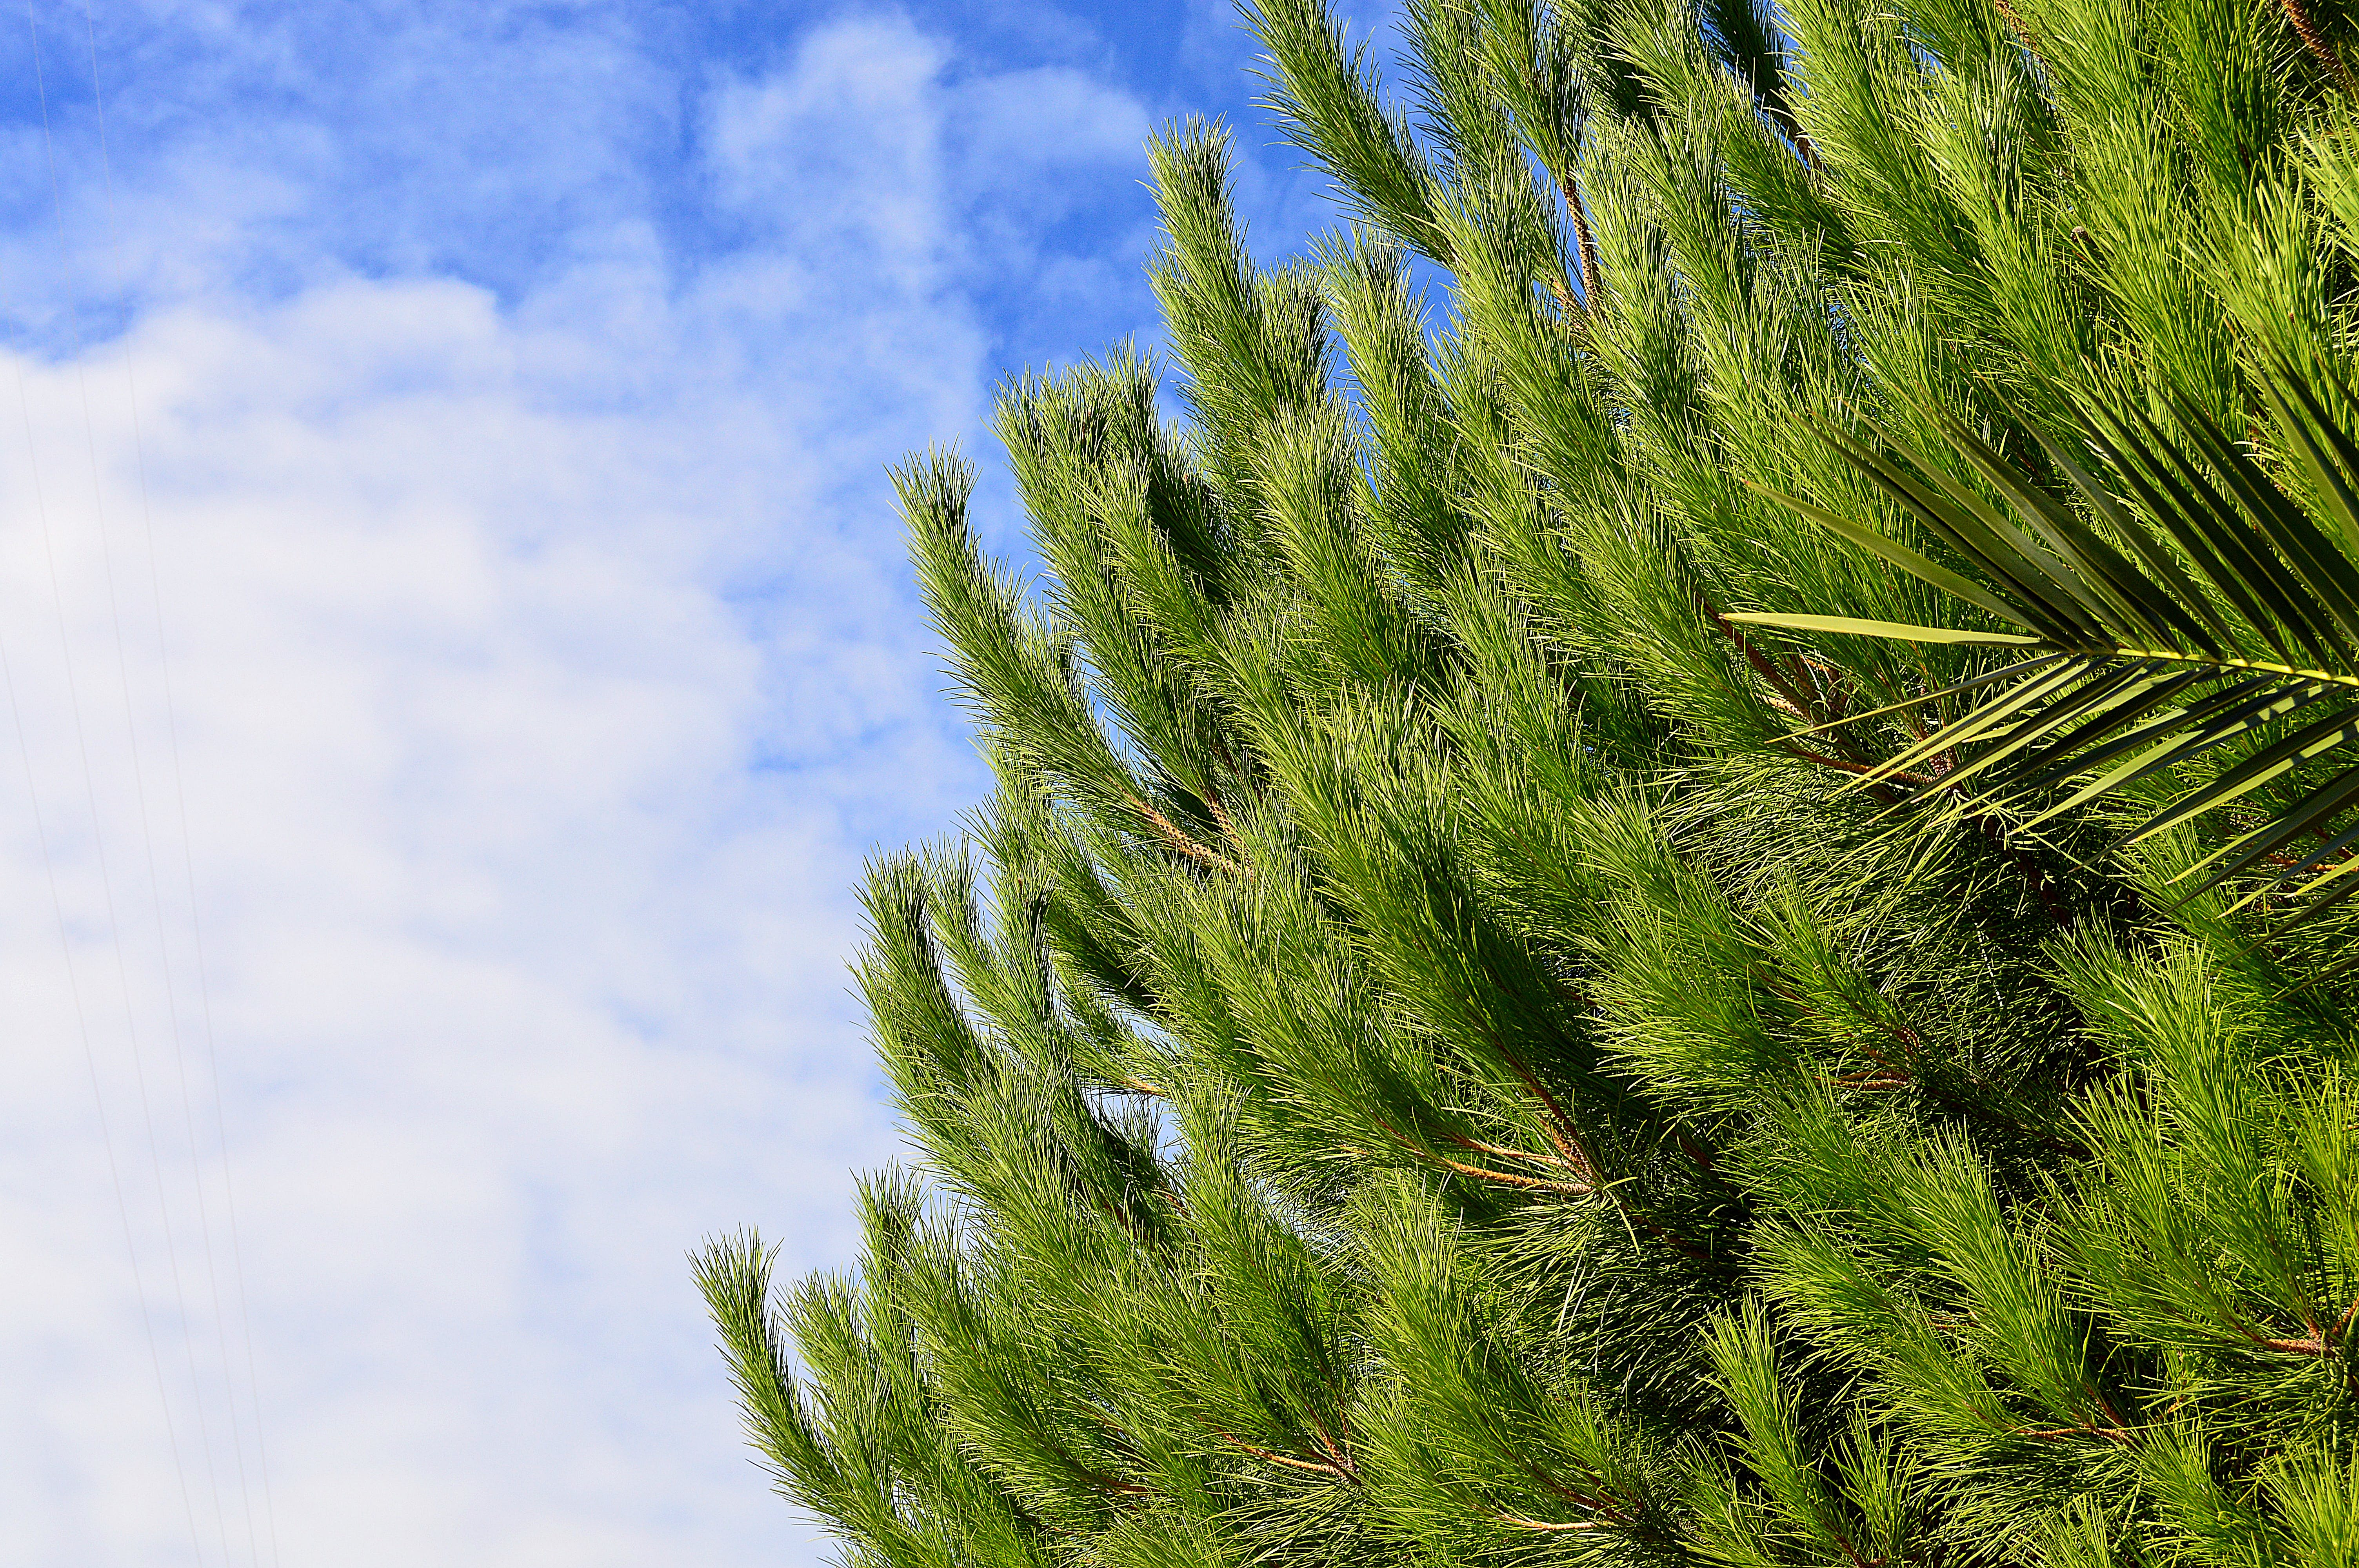 Green Pine Tree With Cloudy Sky Background